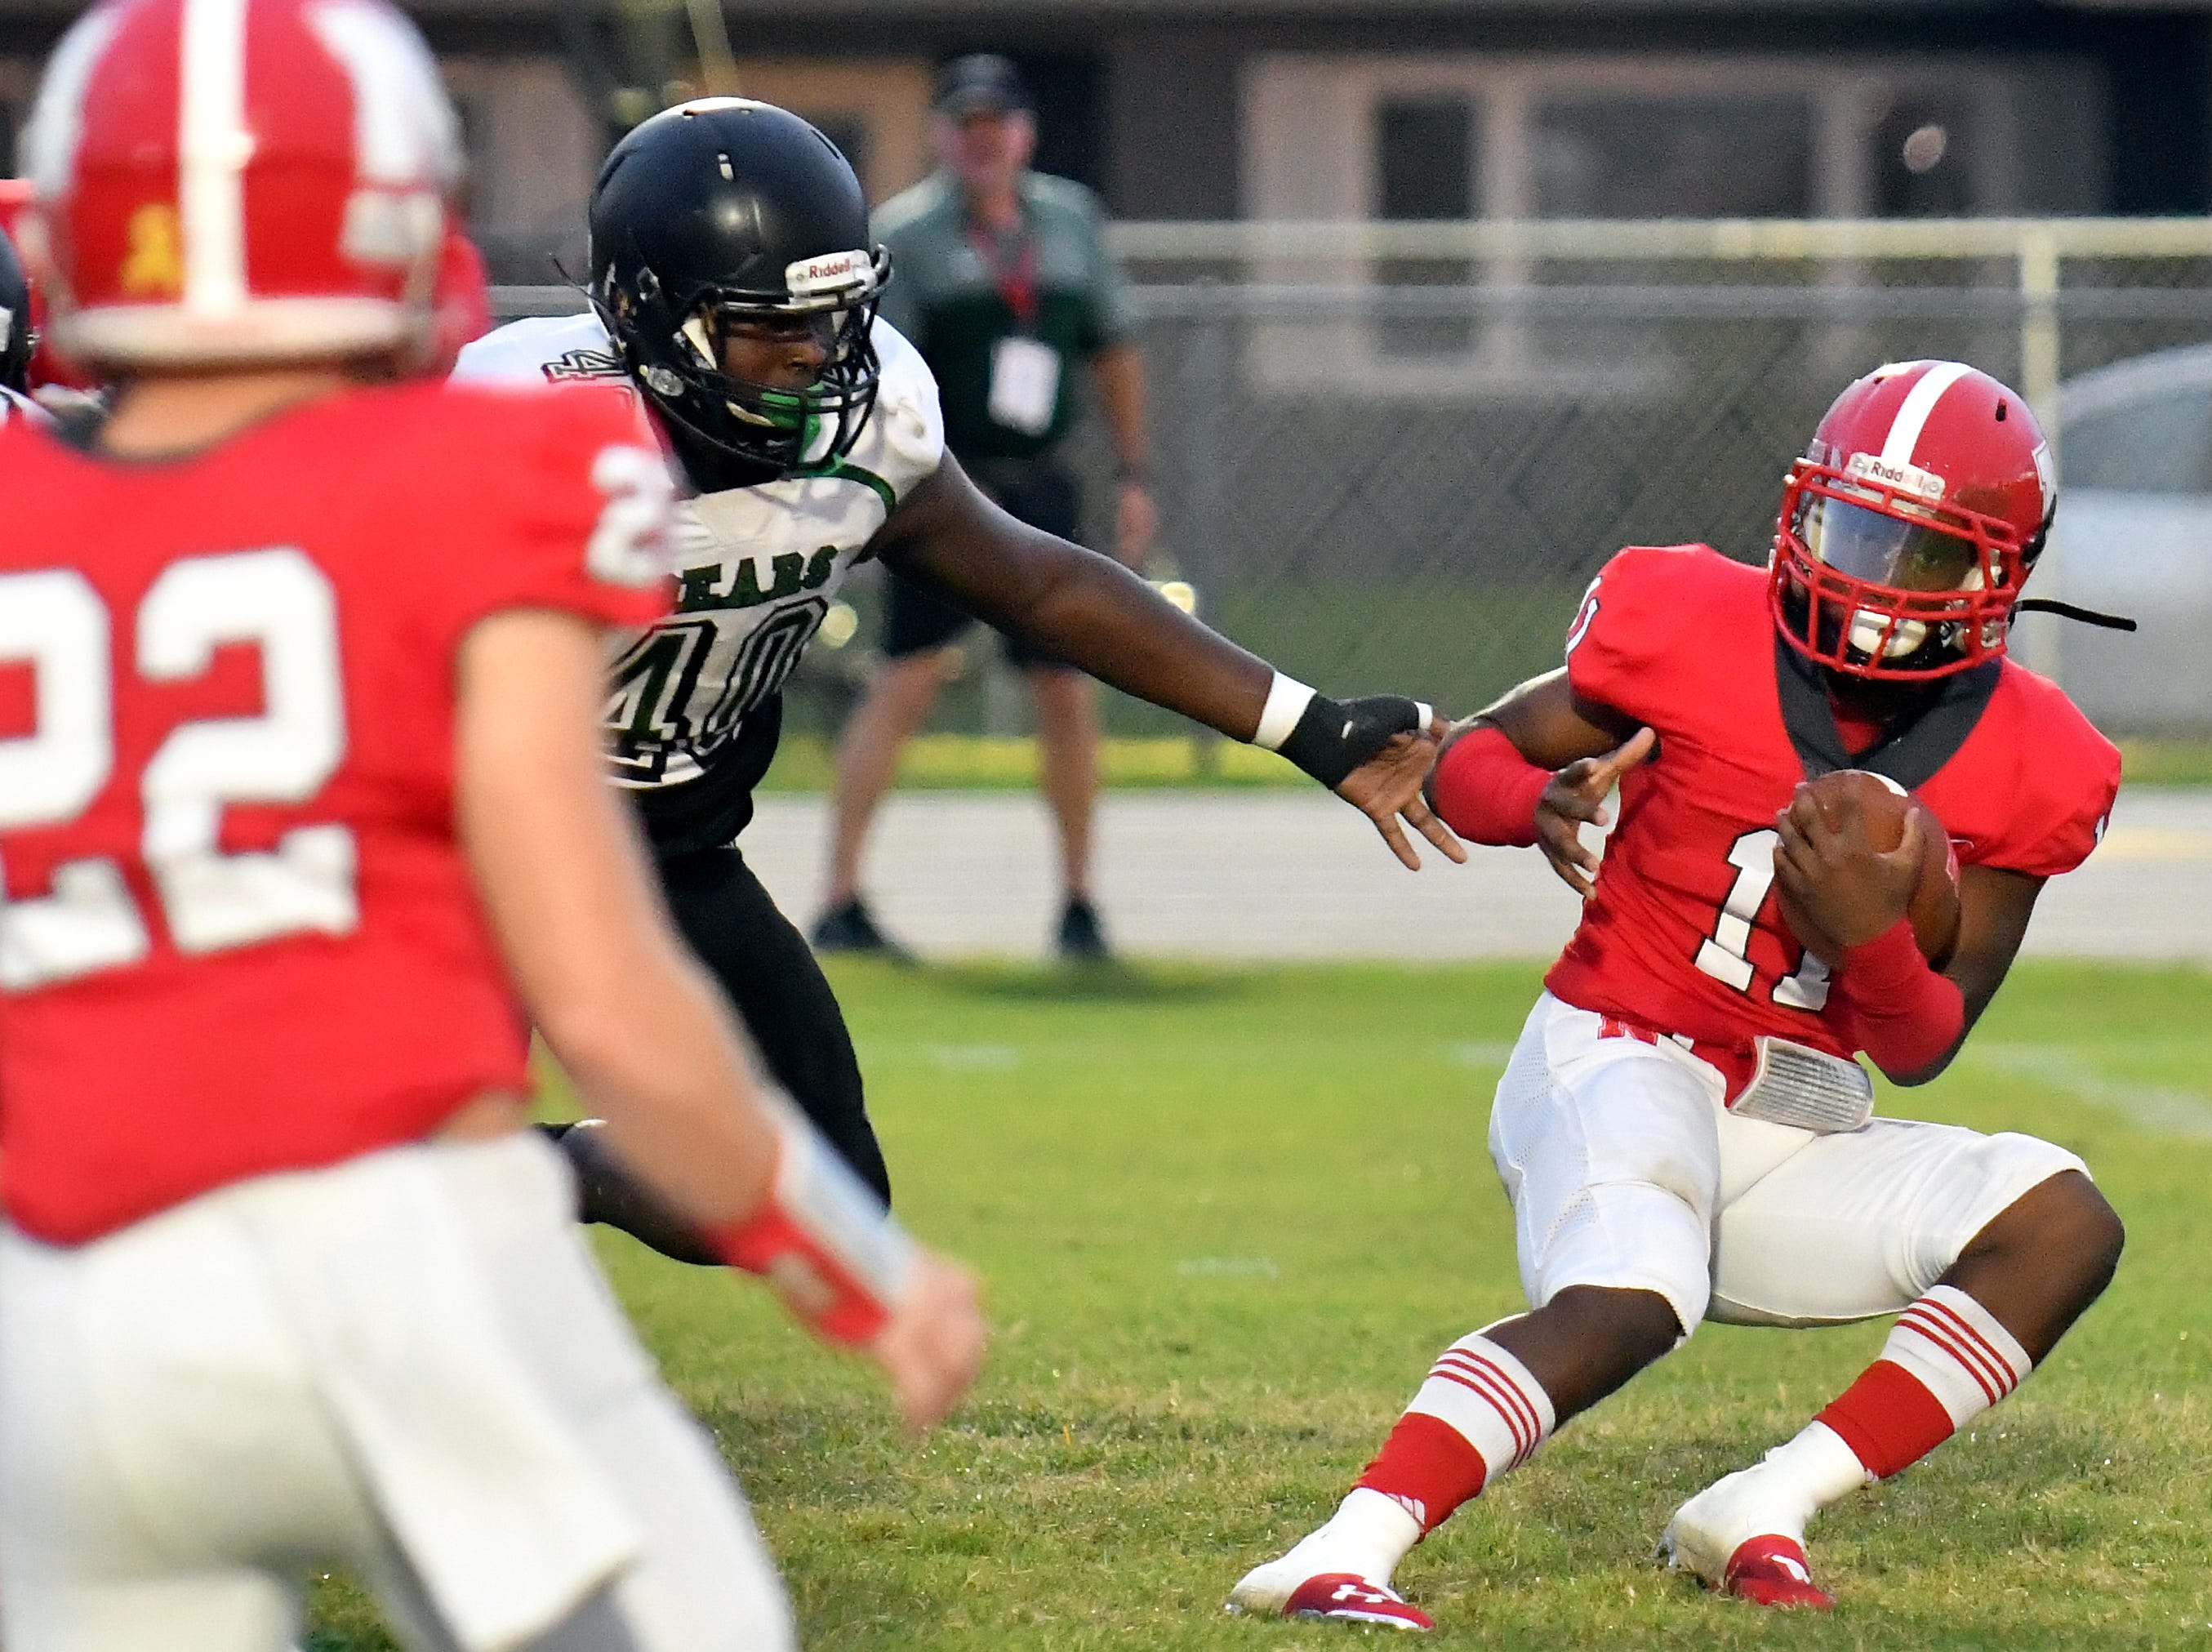 North Fort Myers High School running back Shomari Manson (11) dodges a defender during their game with Palmetto Ridge High School, Friday, Sept. 7, 2018. (Chris Tilley/Special to the Naples Daily News)